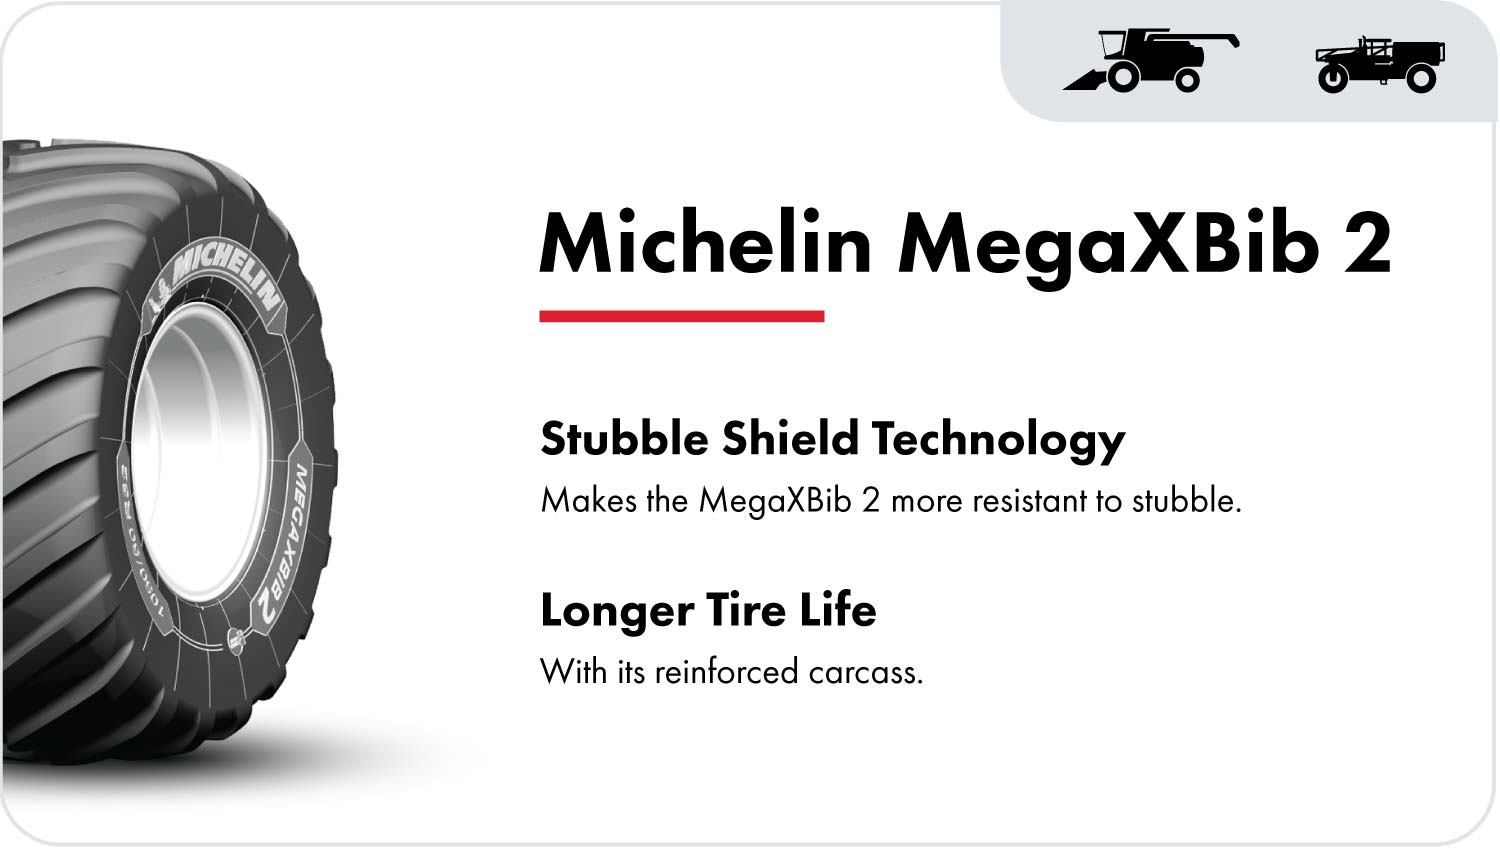 The Michelin MegaXBib 2 combine tire is marked with Stubble Shield technology. This, along with its reinforced carcass, makes the MegaXBib more resistant to stubble damage and extends the life of the tire.